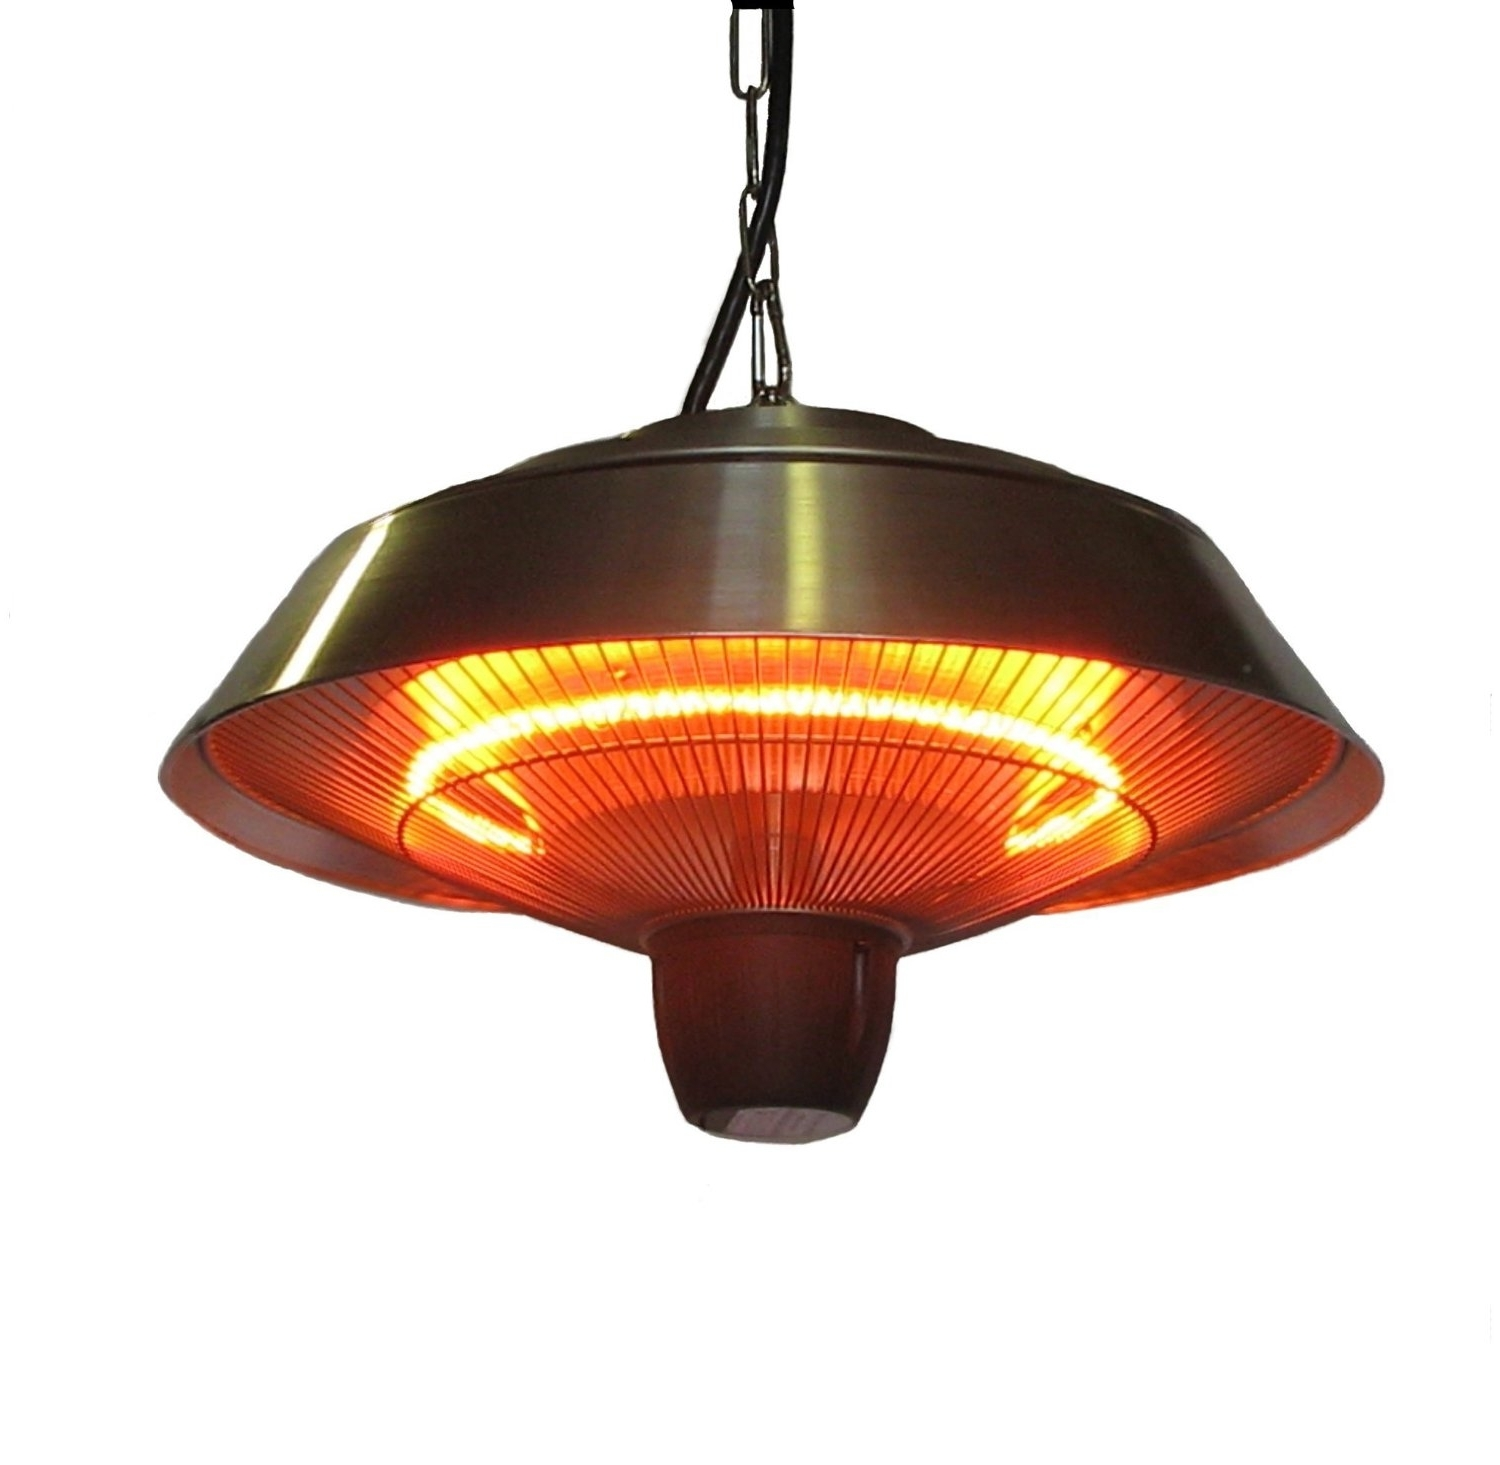 Quality Outdoor Ceiling Fans In Fashionable Interior: Hunter Ceiling Fan Light Kits Menards Ceiling, Menards (View 11 of 20)